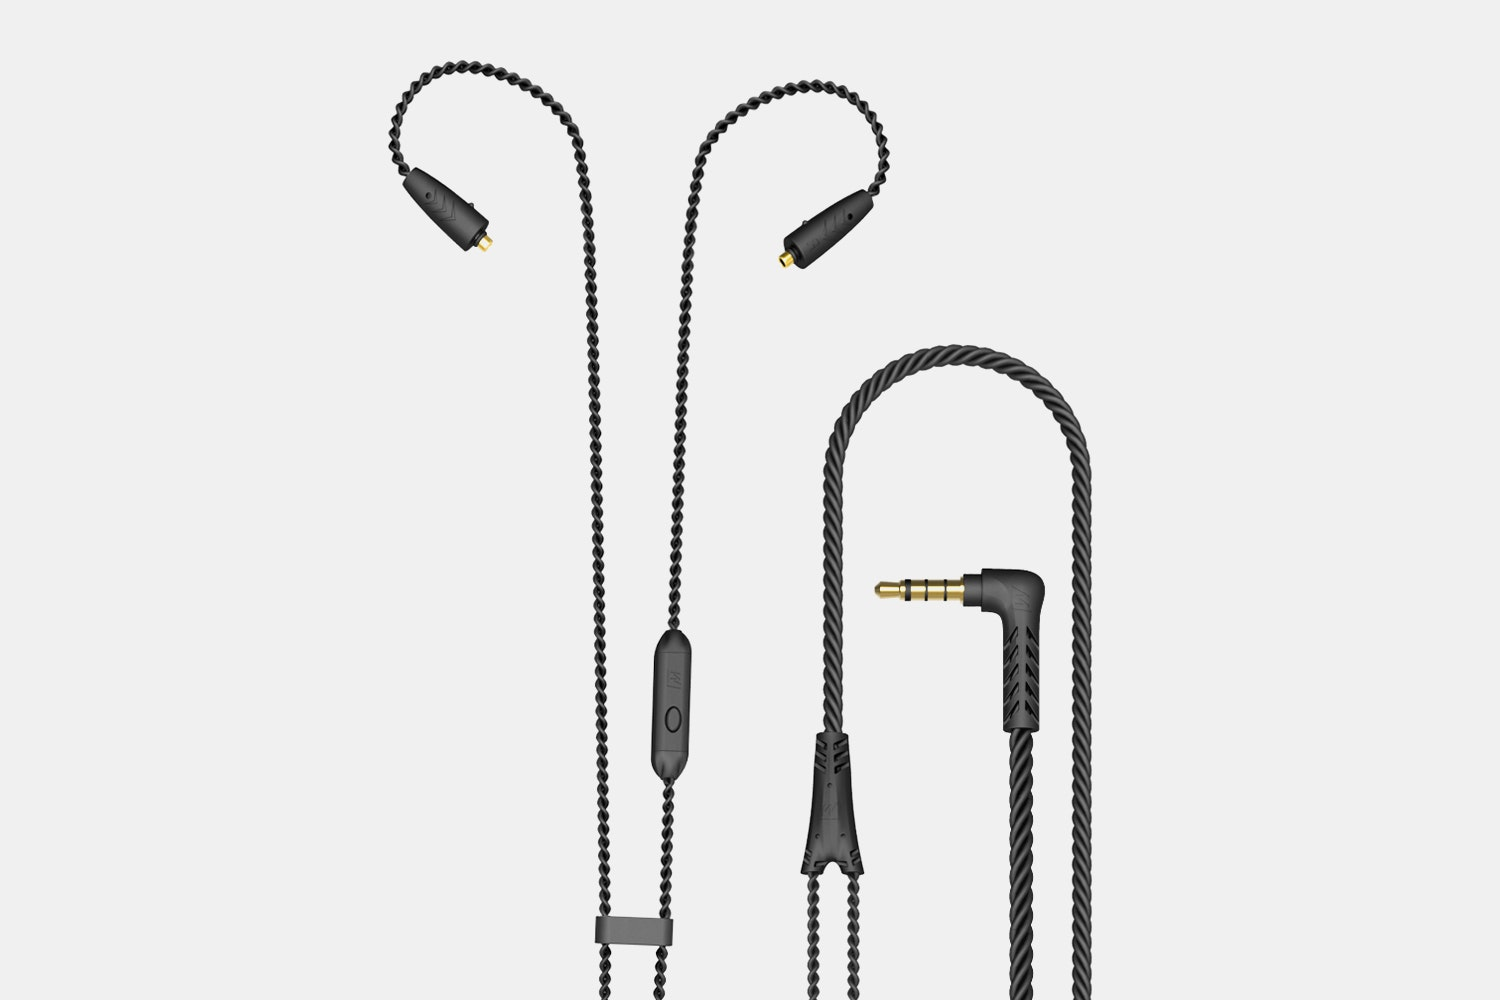 MEE Audio MMCX IEM Cables